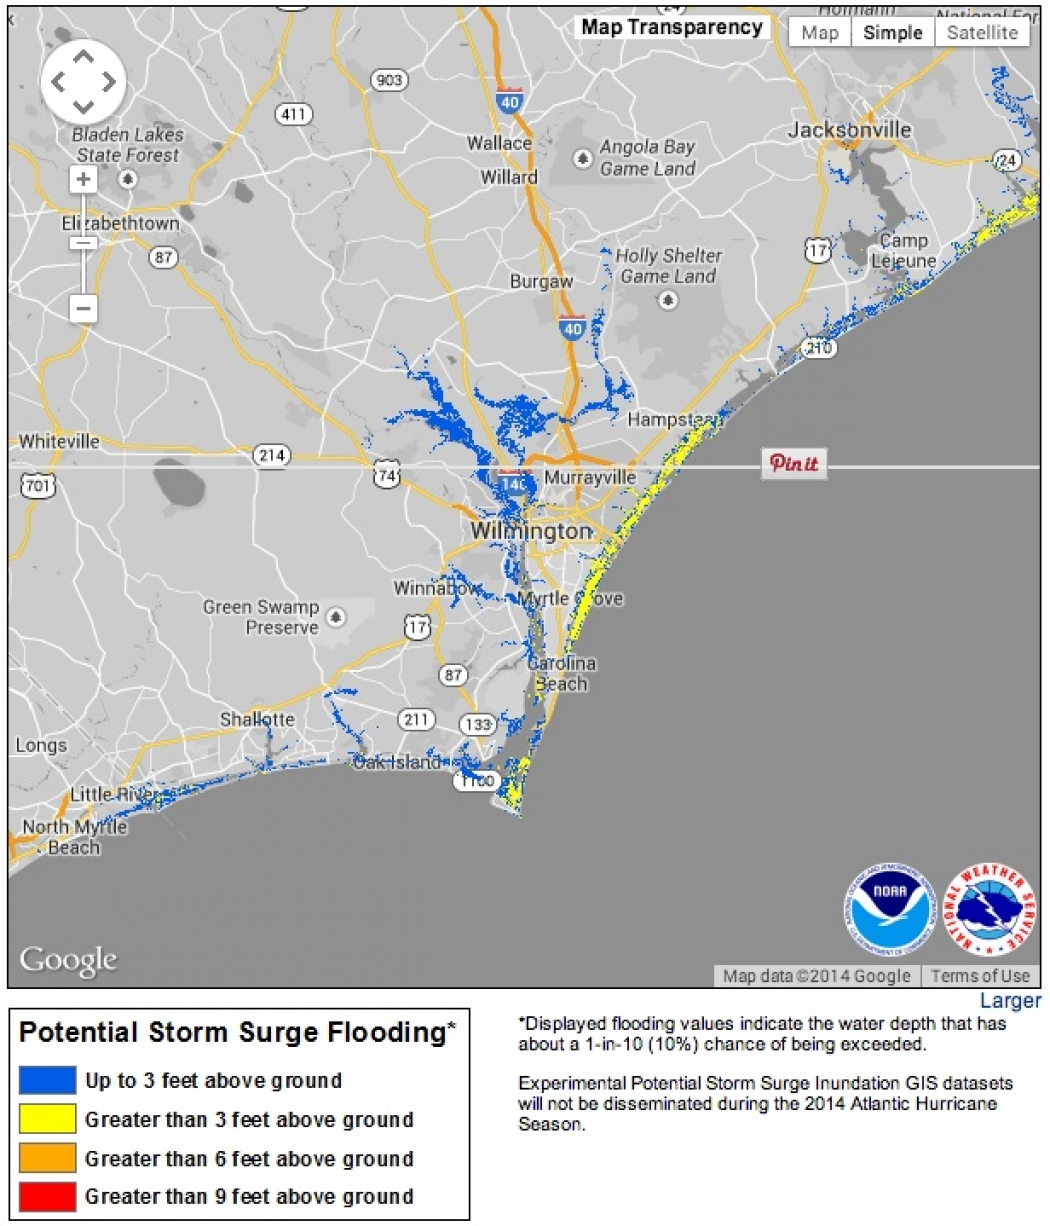 New Storm Surge Maps Debut With TS Arthur Climate Central - Nc flood maps